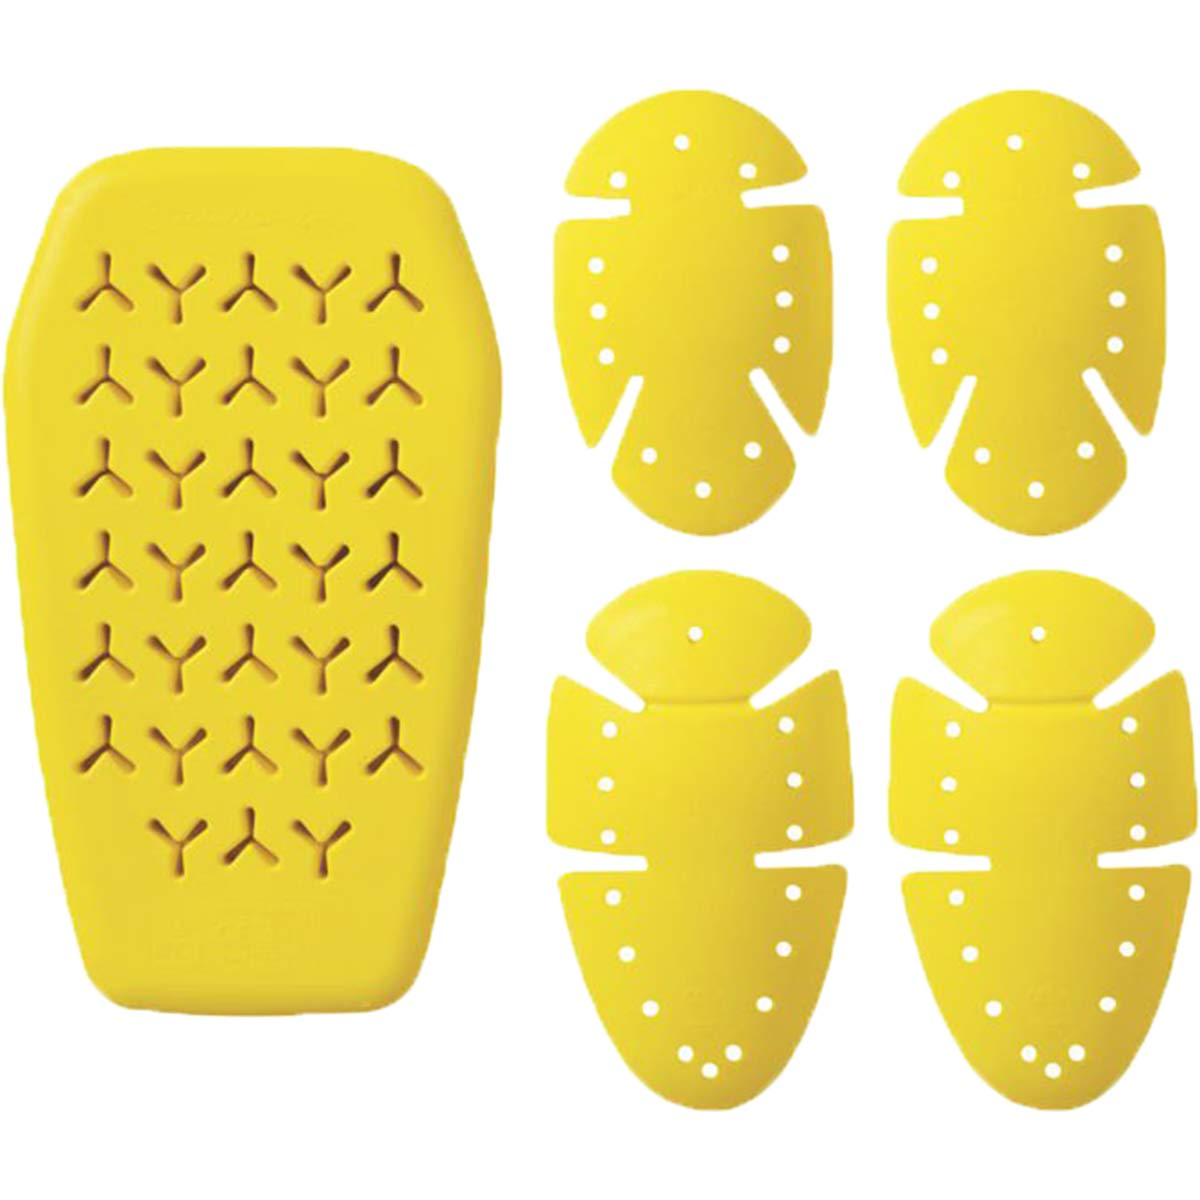 Roland Sands Design Knox Microlock Men's Off-Road Motorcyle Pads - Yellow/One Size 0812-0804-0000